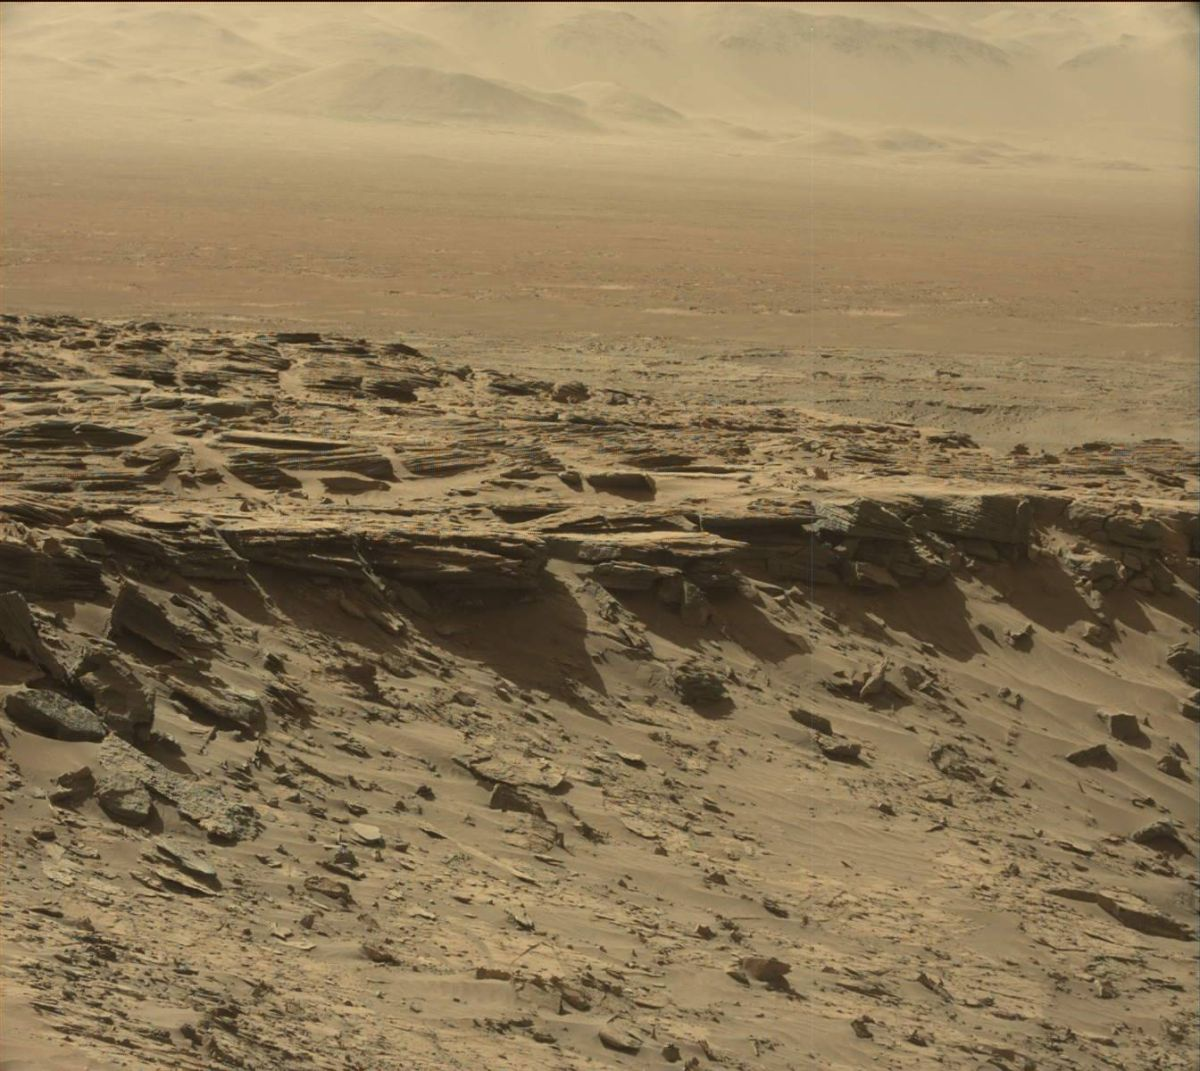 nasa curiosity latest news - photo #36